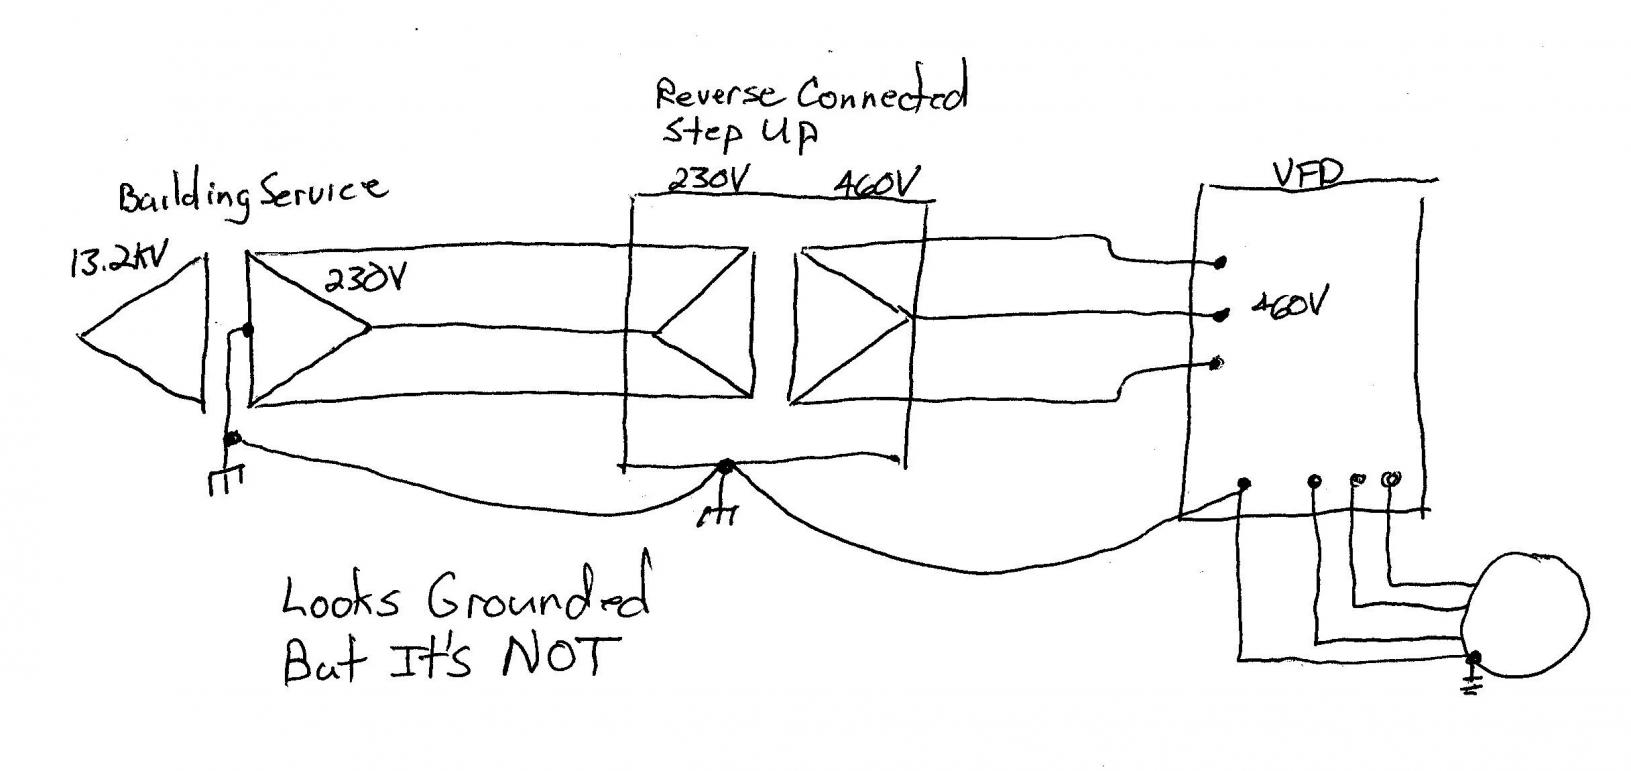 Grounded B Phase Wiring Diagram Schematic Honda Odyssey Ke Deltastepupungrounded